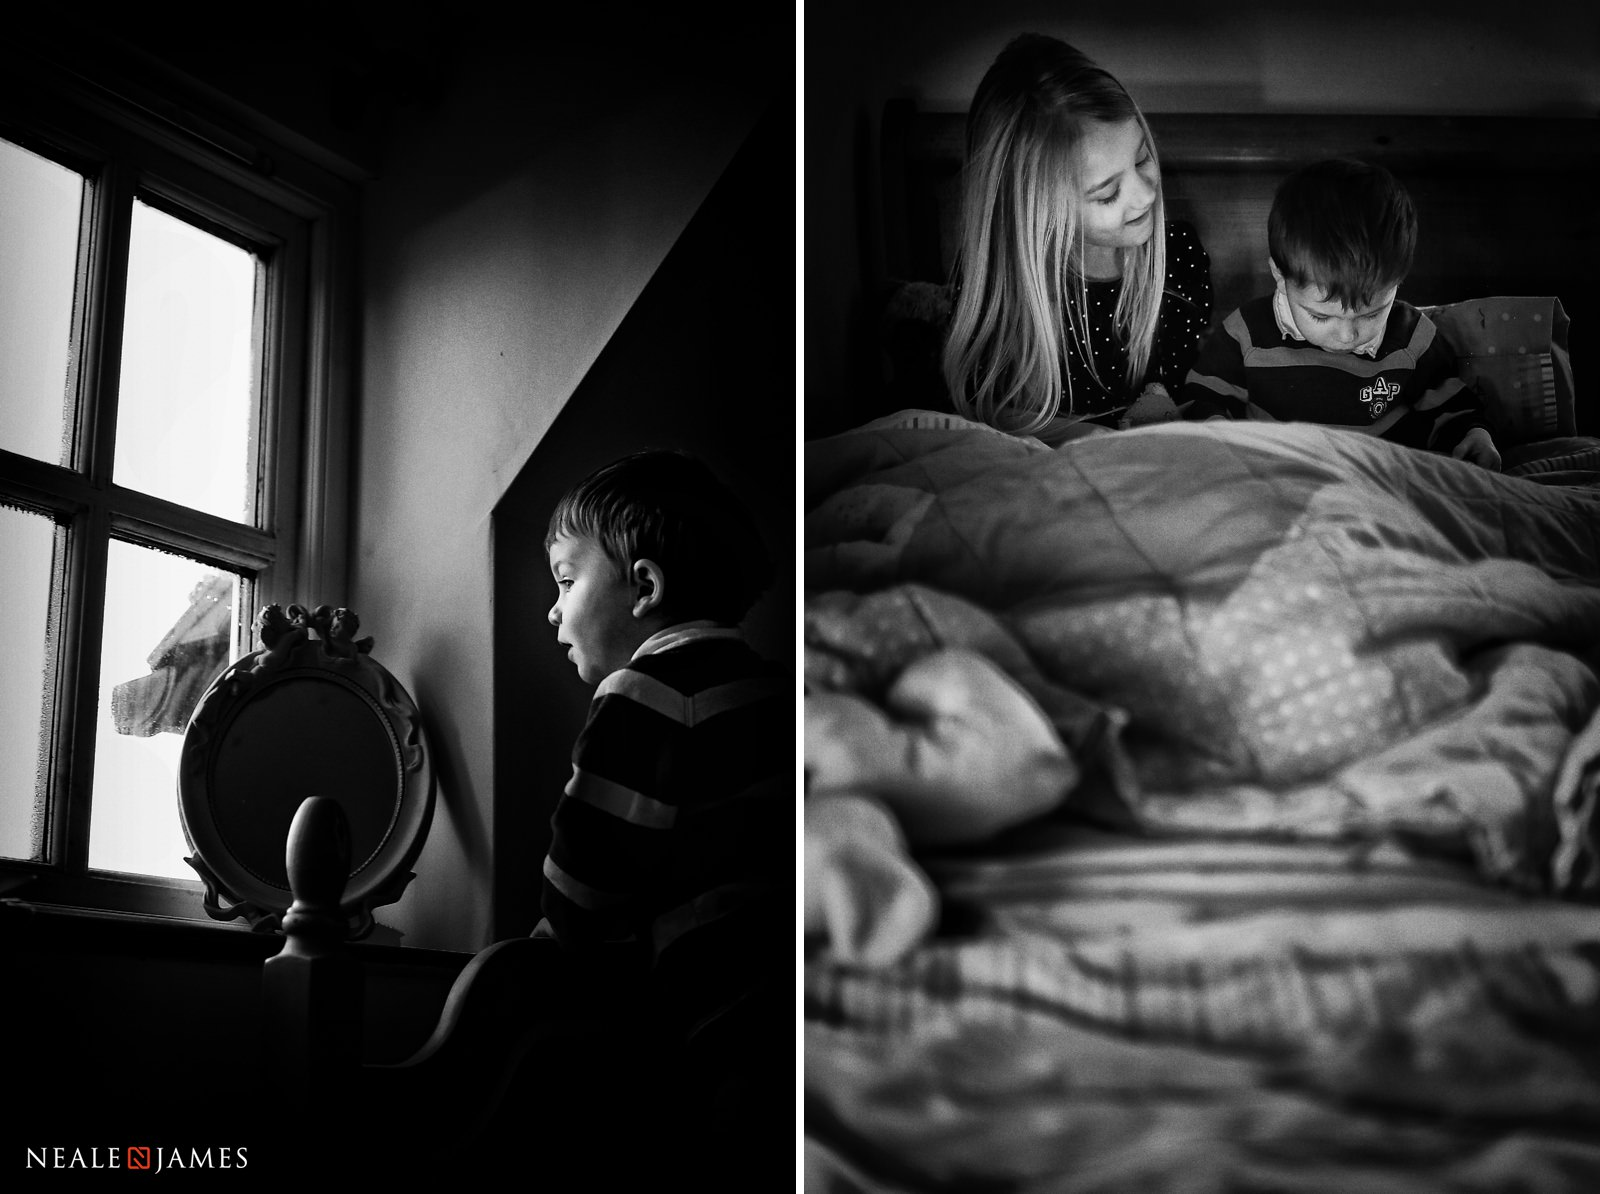 Two images taken during a family photoshoot of a young boy looking out of a window and then reading a book with his sister